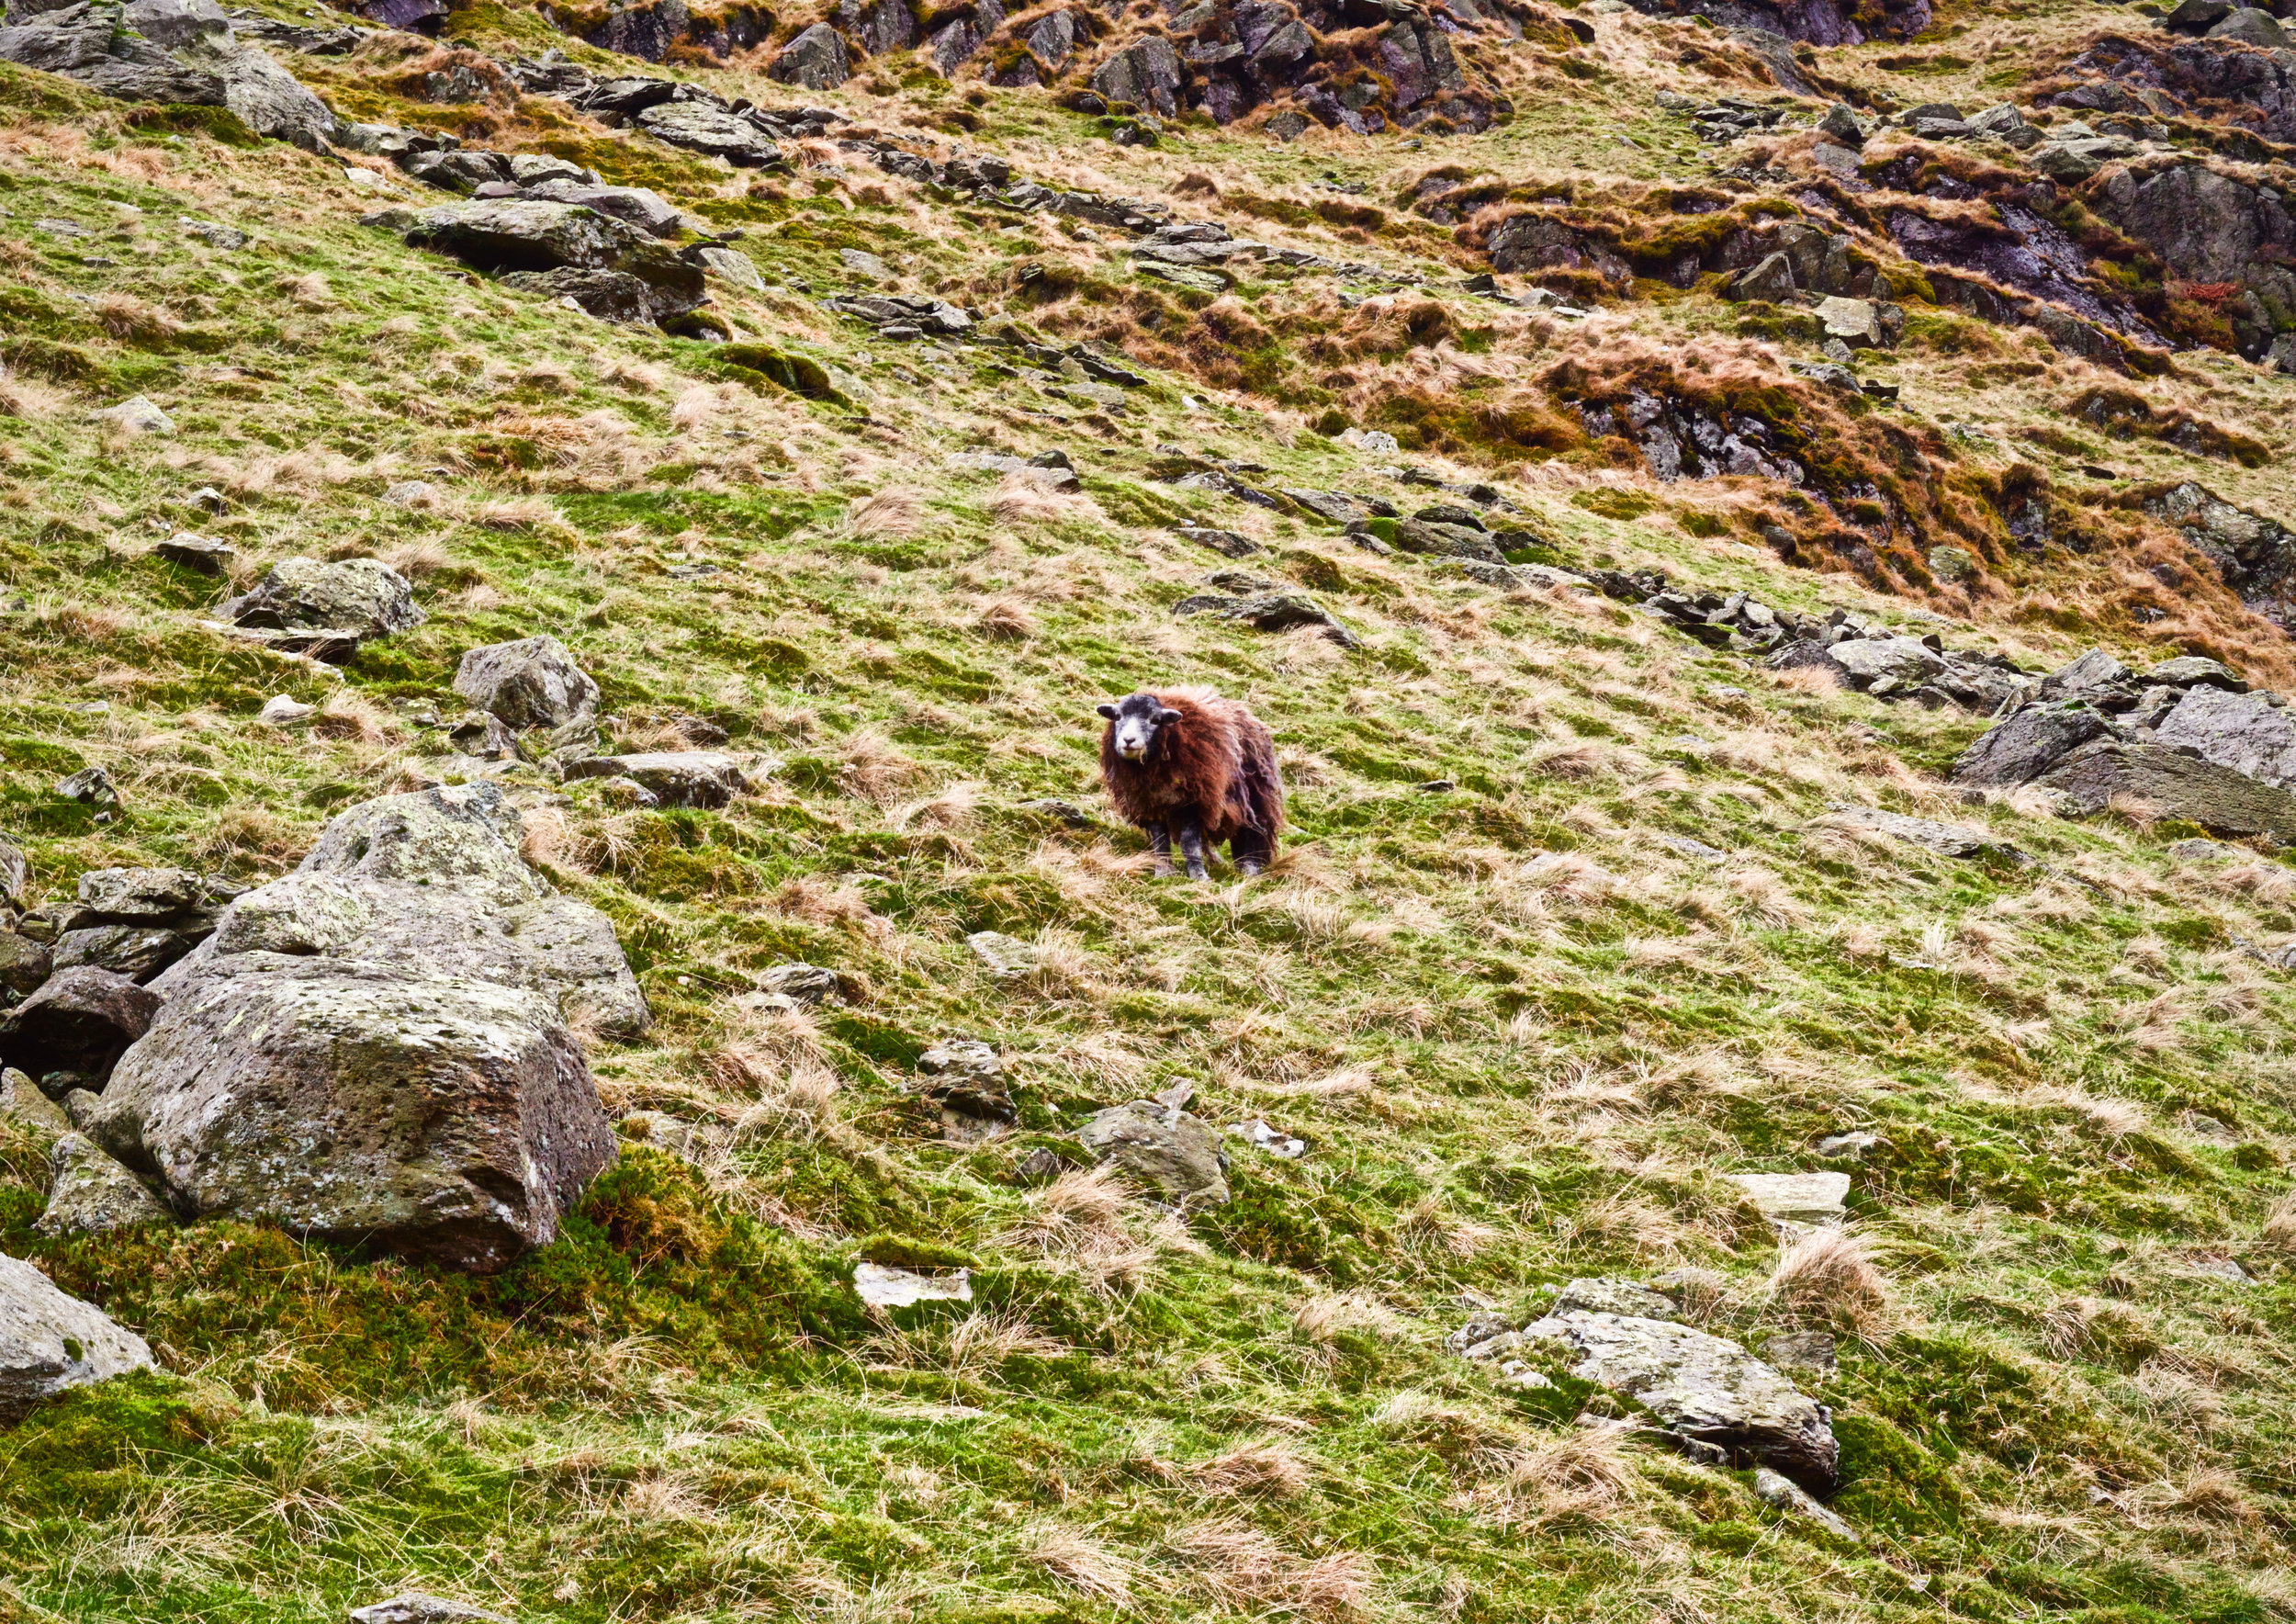 SHEEP ON THE SIDE OF KIRKSTONE PASS